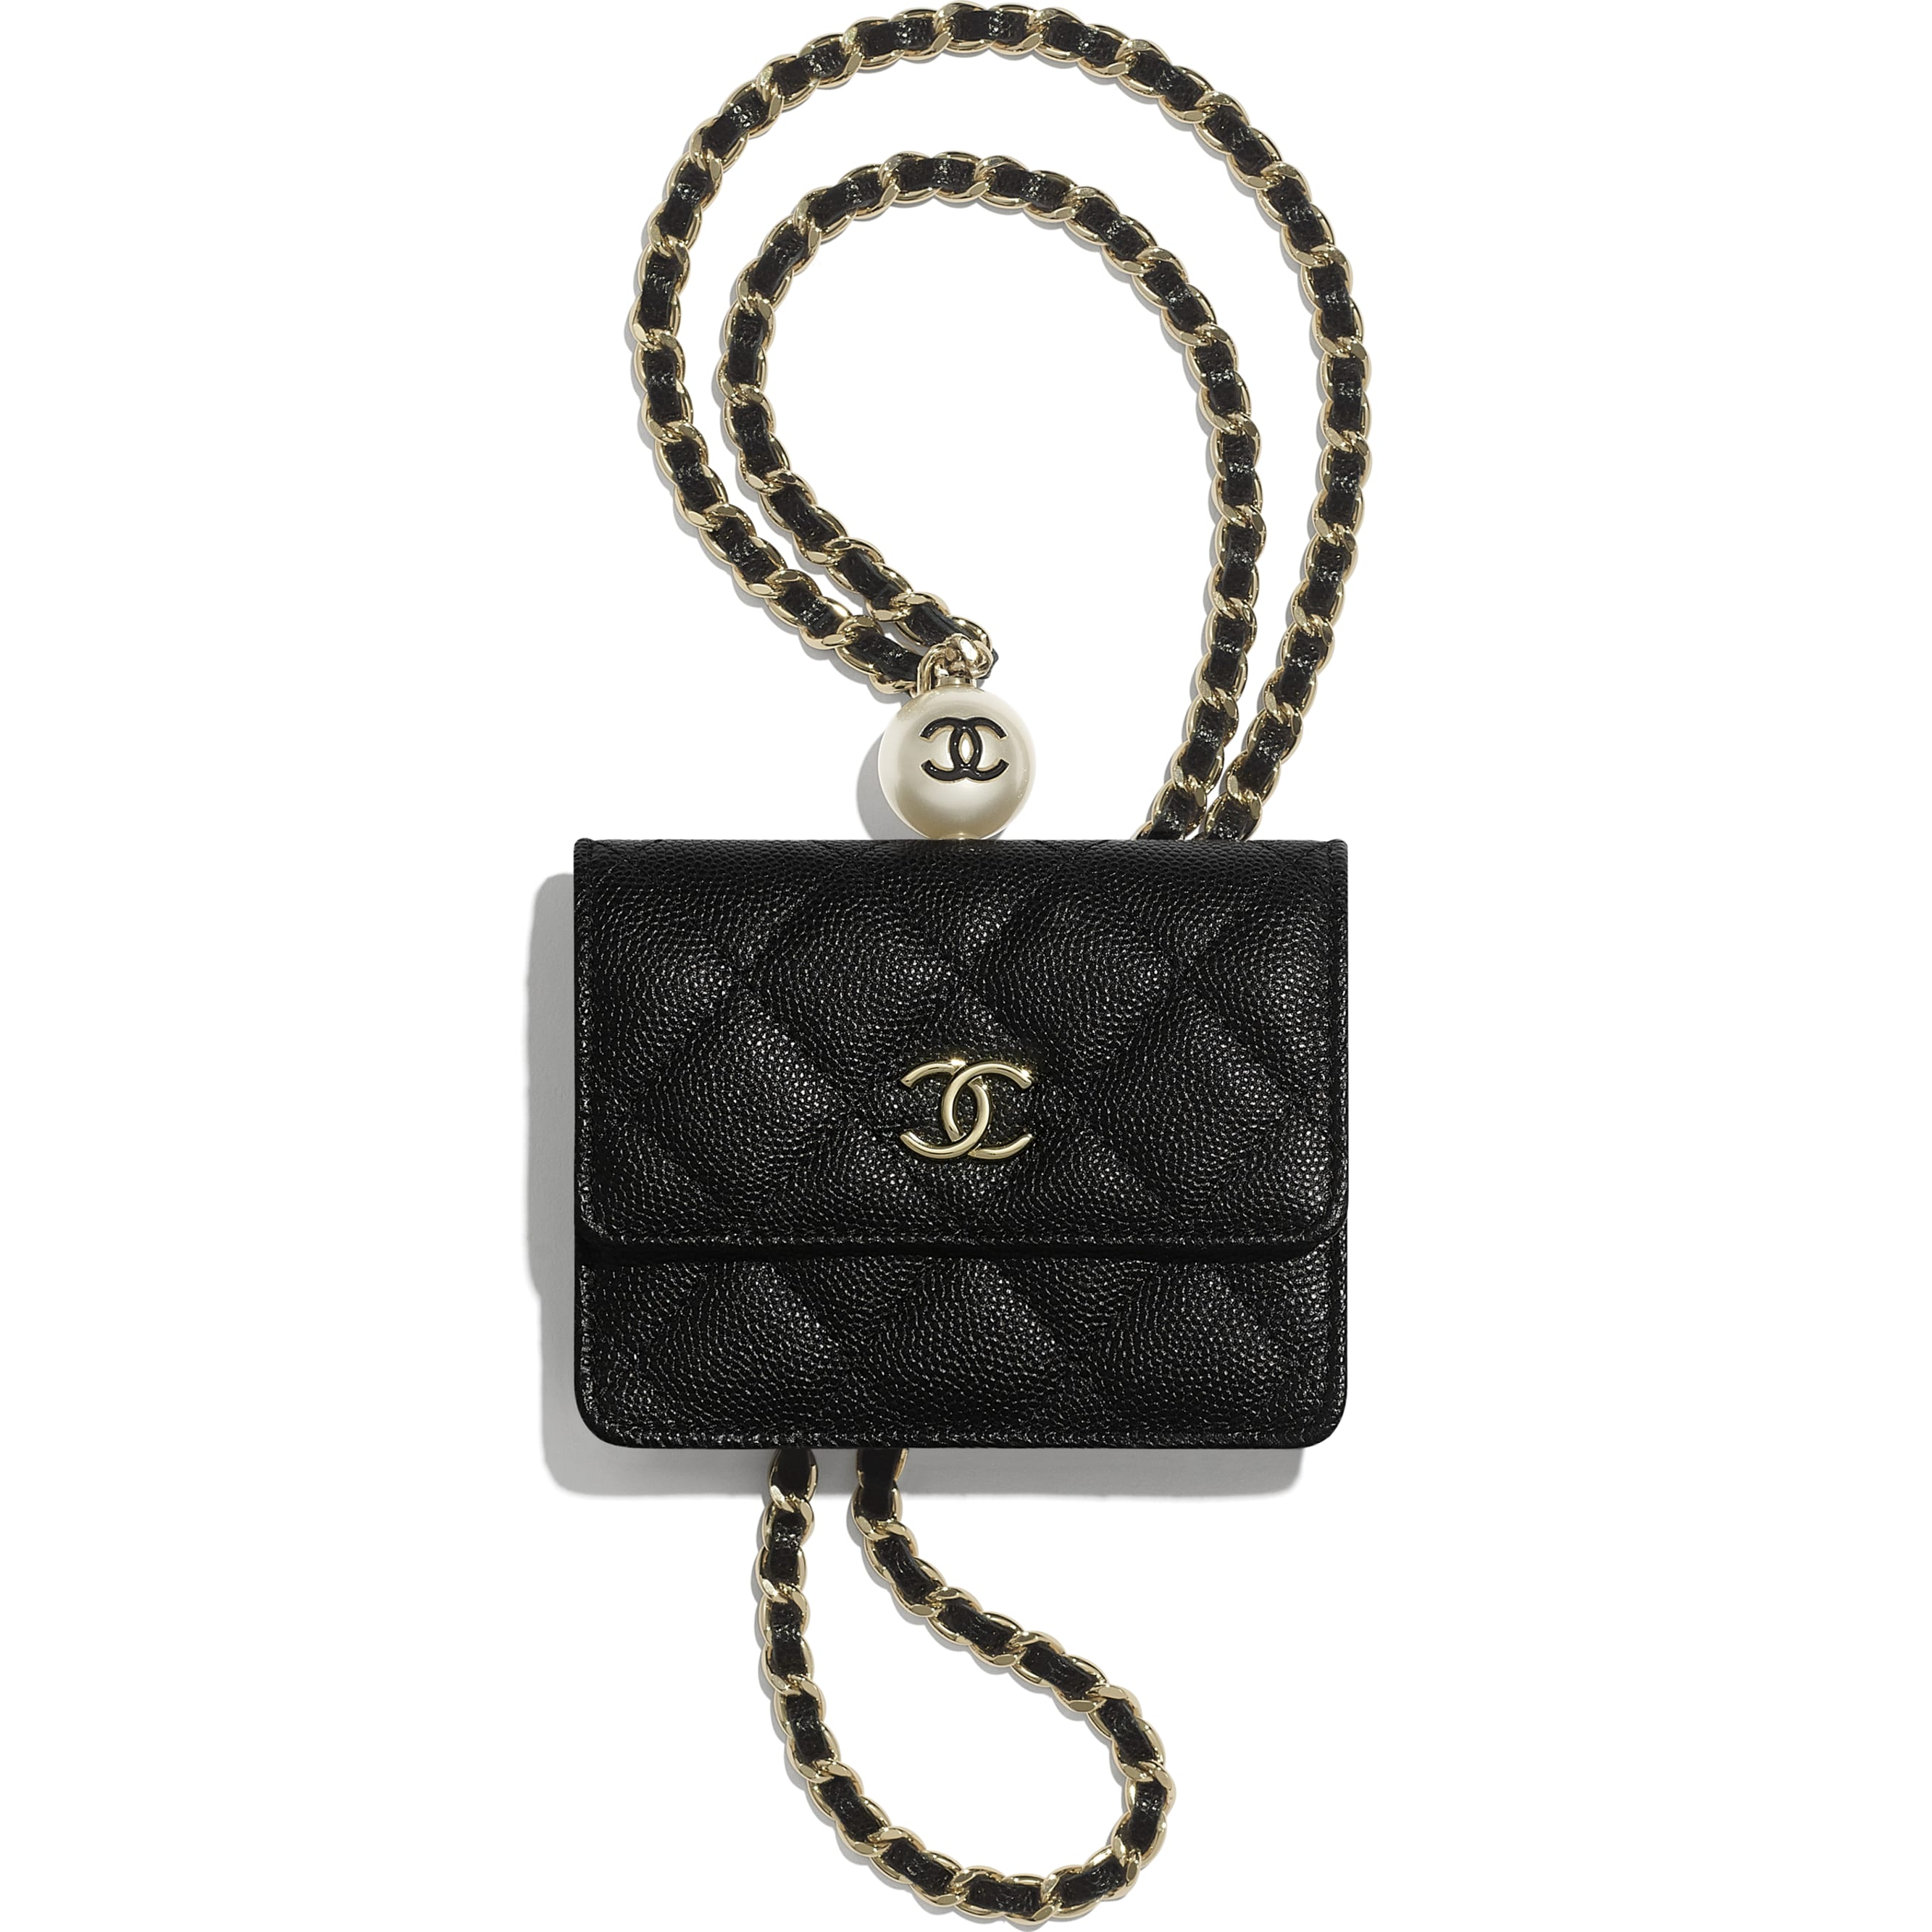 Flap Coin Purse with Chain - Black - Grained Calfskin, Imitation Pearl & Gold-Tone Metal - CHANEL - Default view - see standard sized version